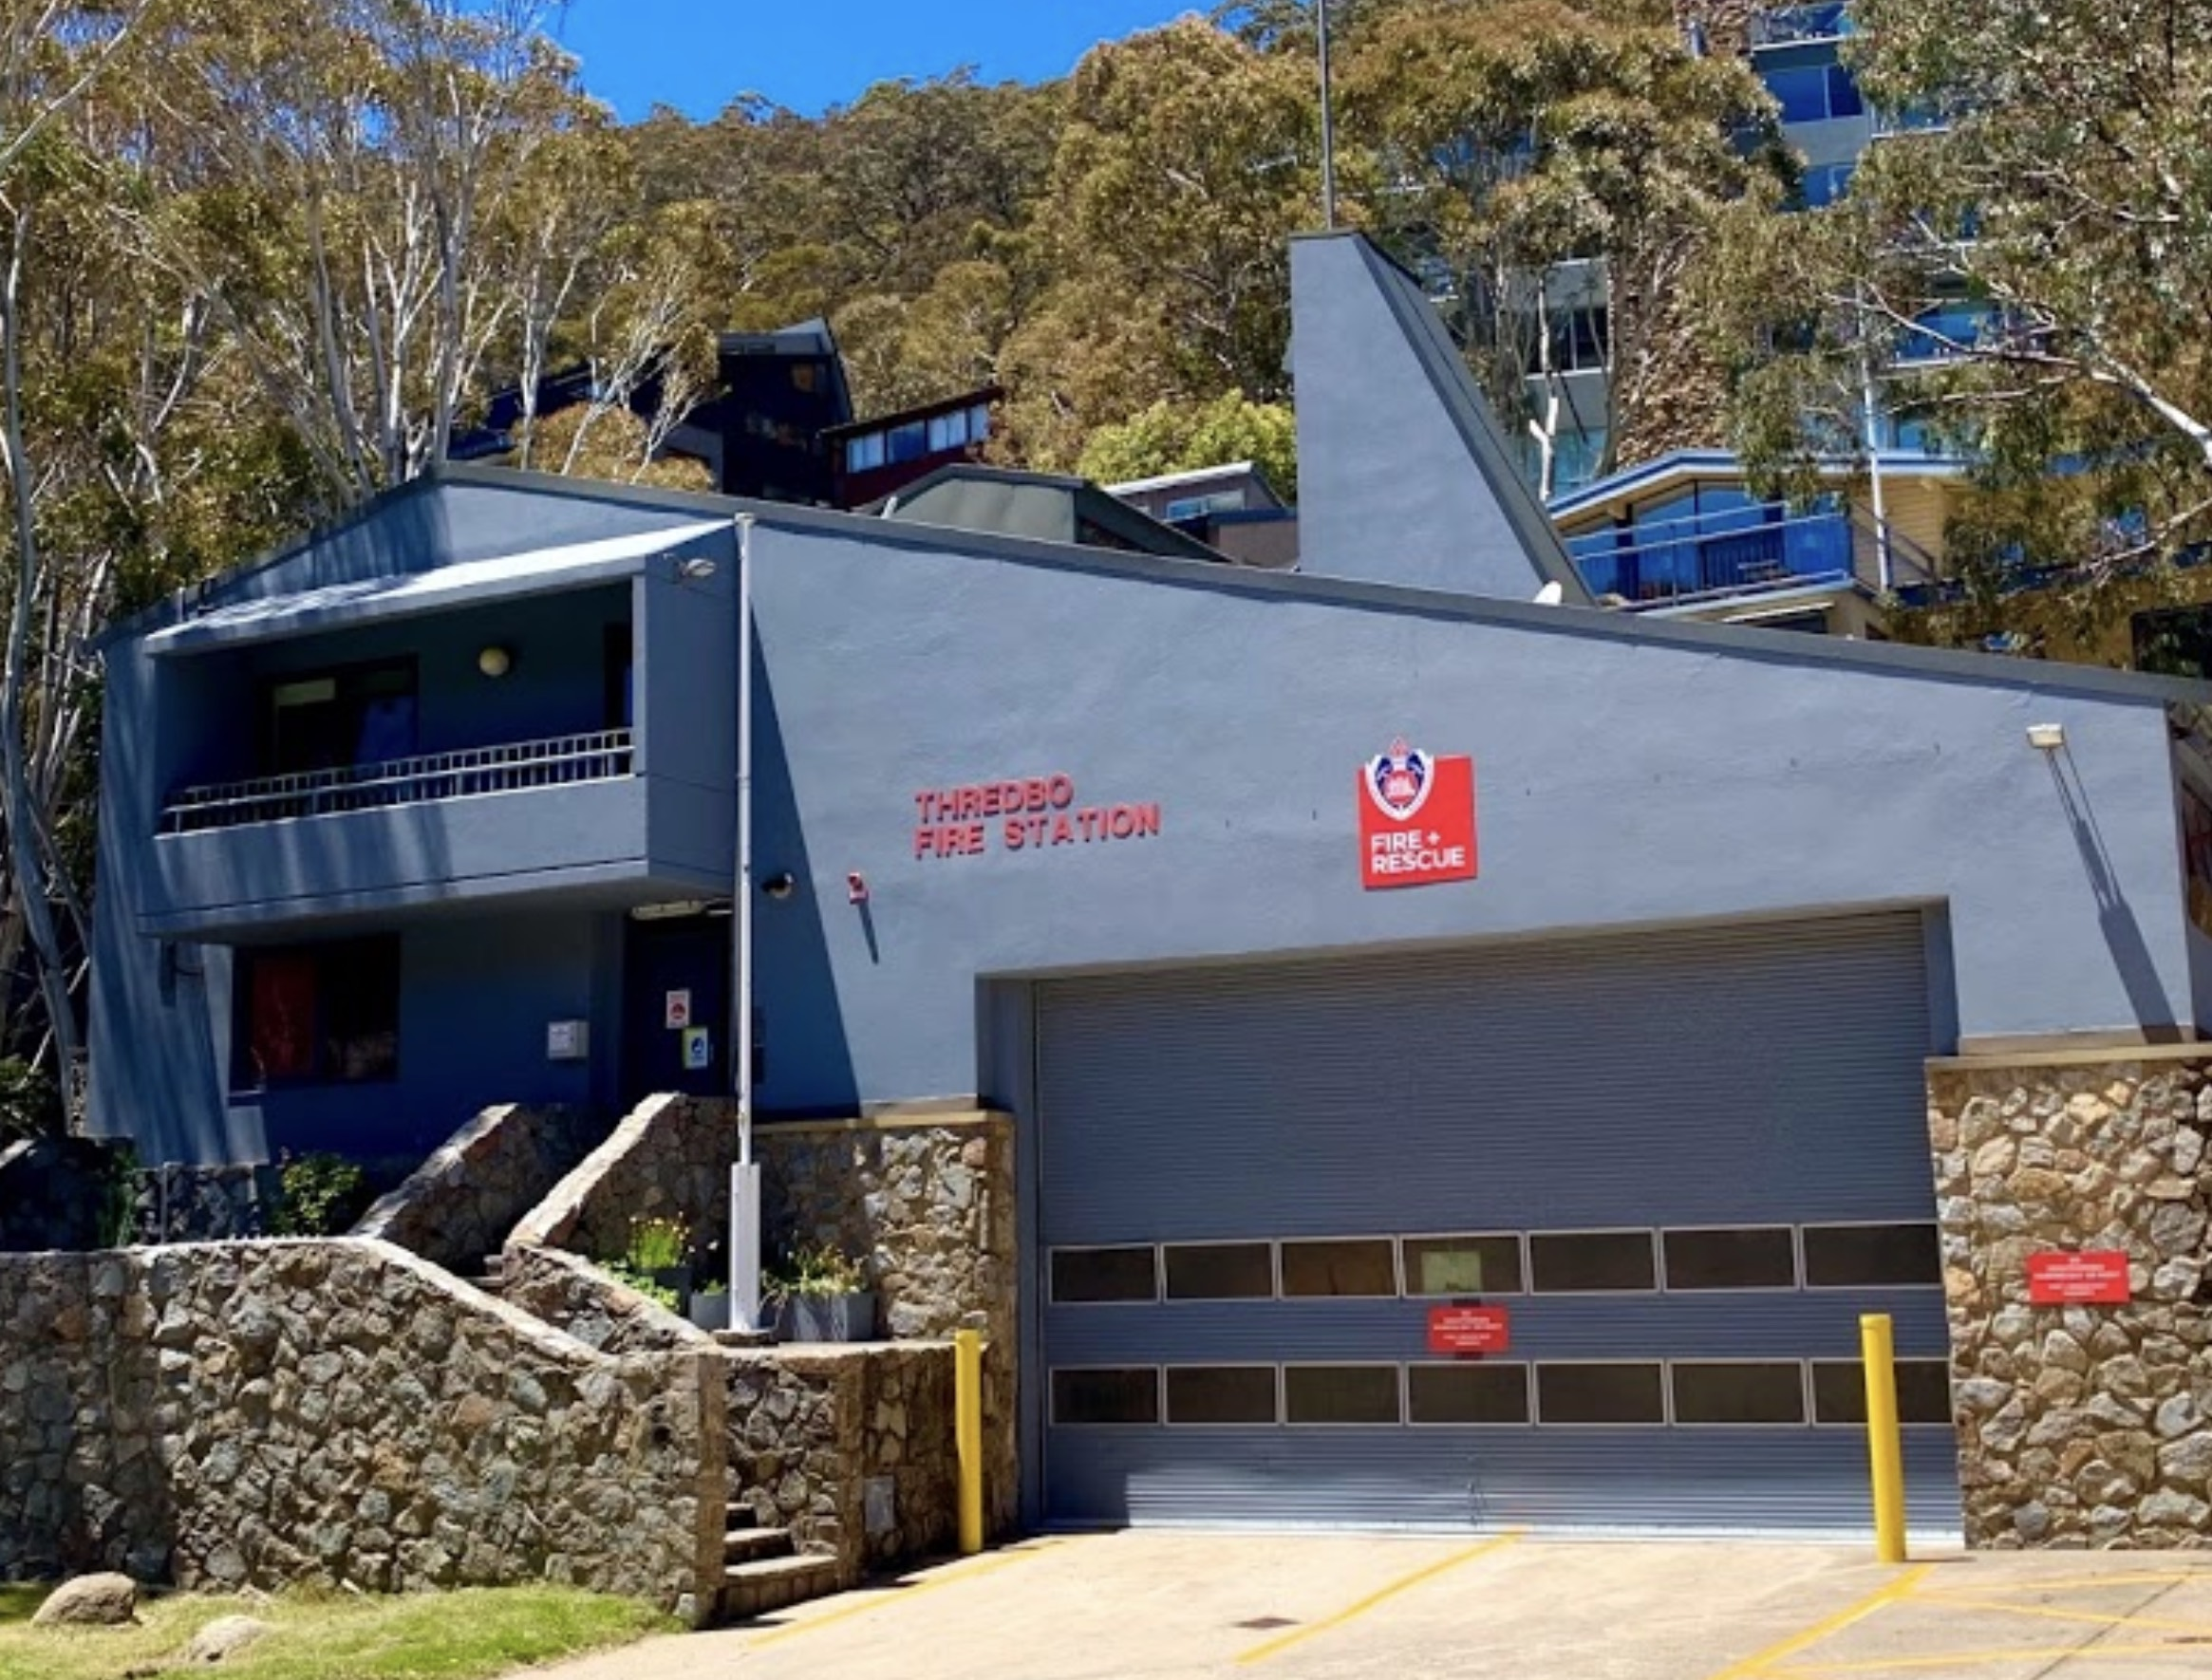 Thredbo Fire Station